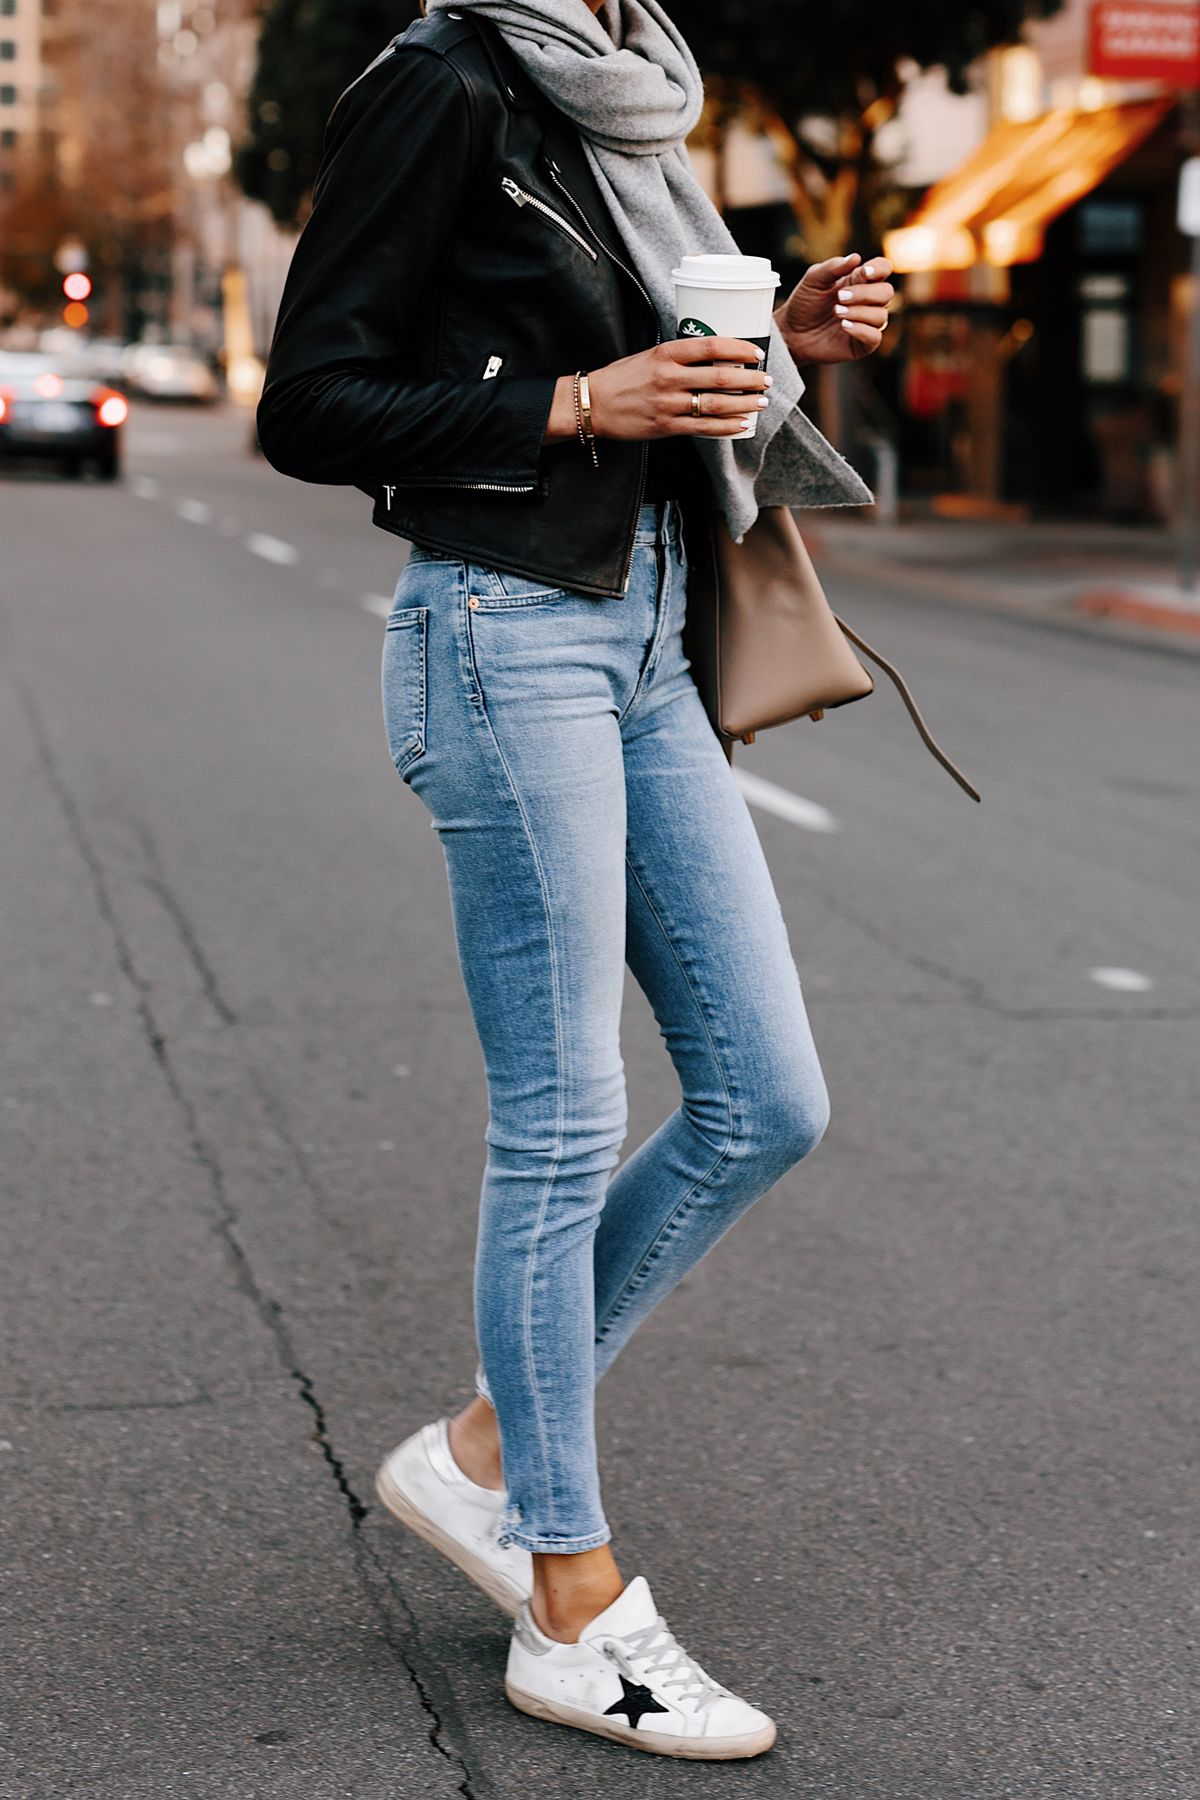 Woman Wearing Black Leather Jacket Grey Scarf Denim Skinny Jeans Golden Goose Sneakers Fashion Jackson San Diego Fashion Blogger Street Style #leatherjacketoutfit